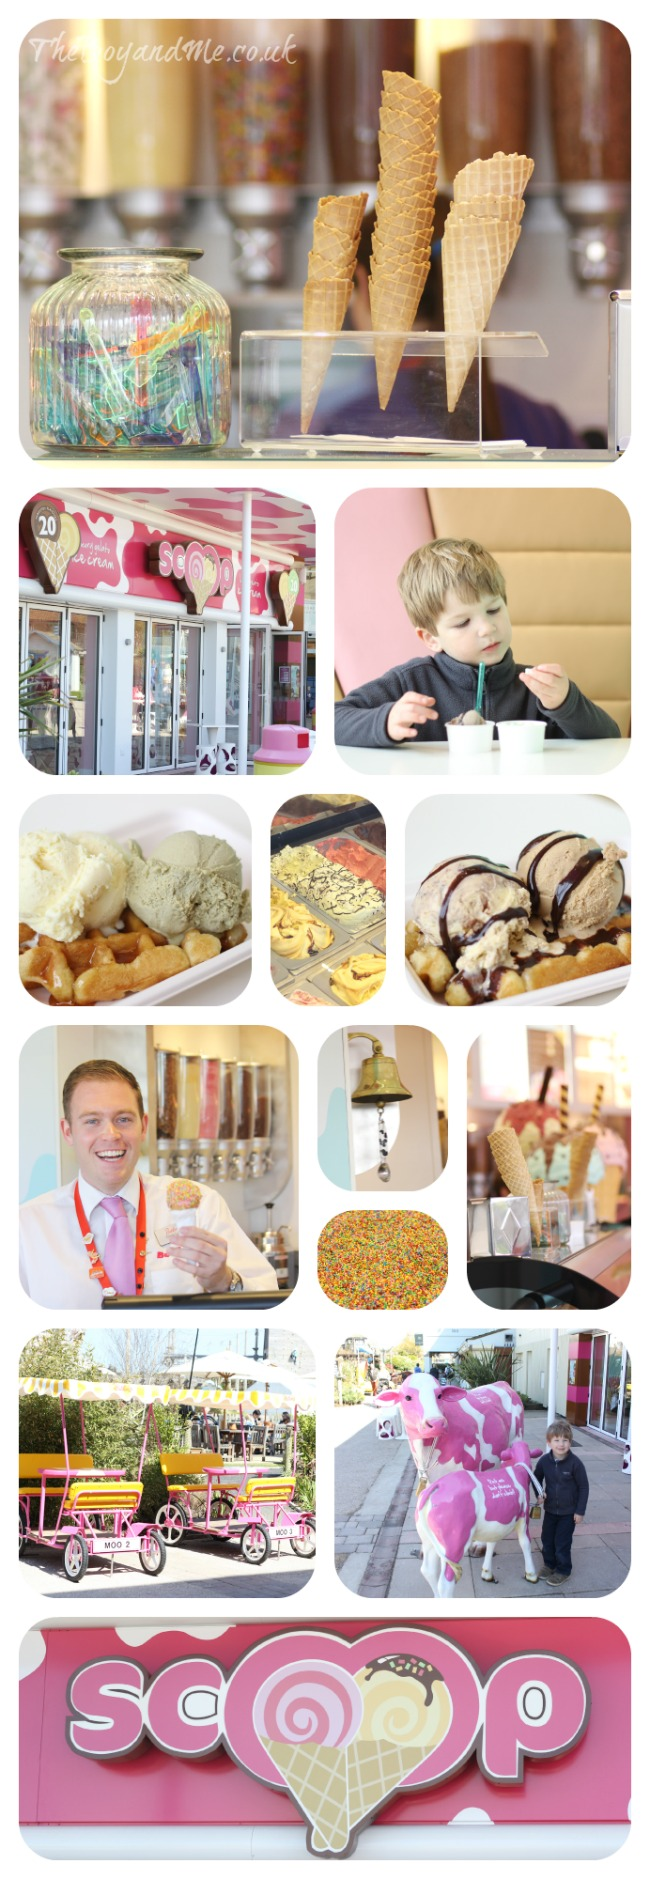 Scoop ice-cream parlour - Butlin's, Bognor Regis